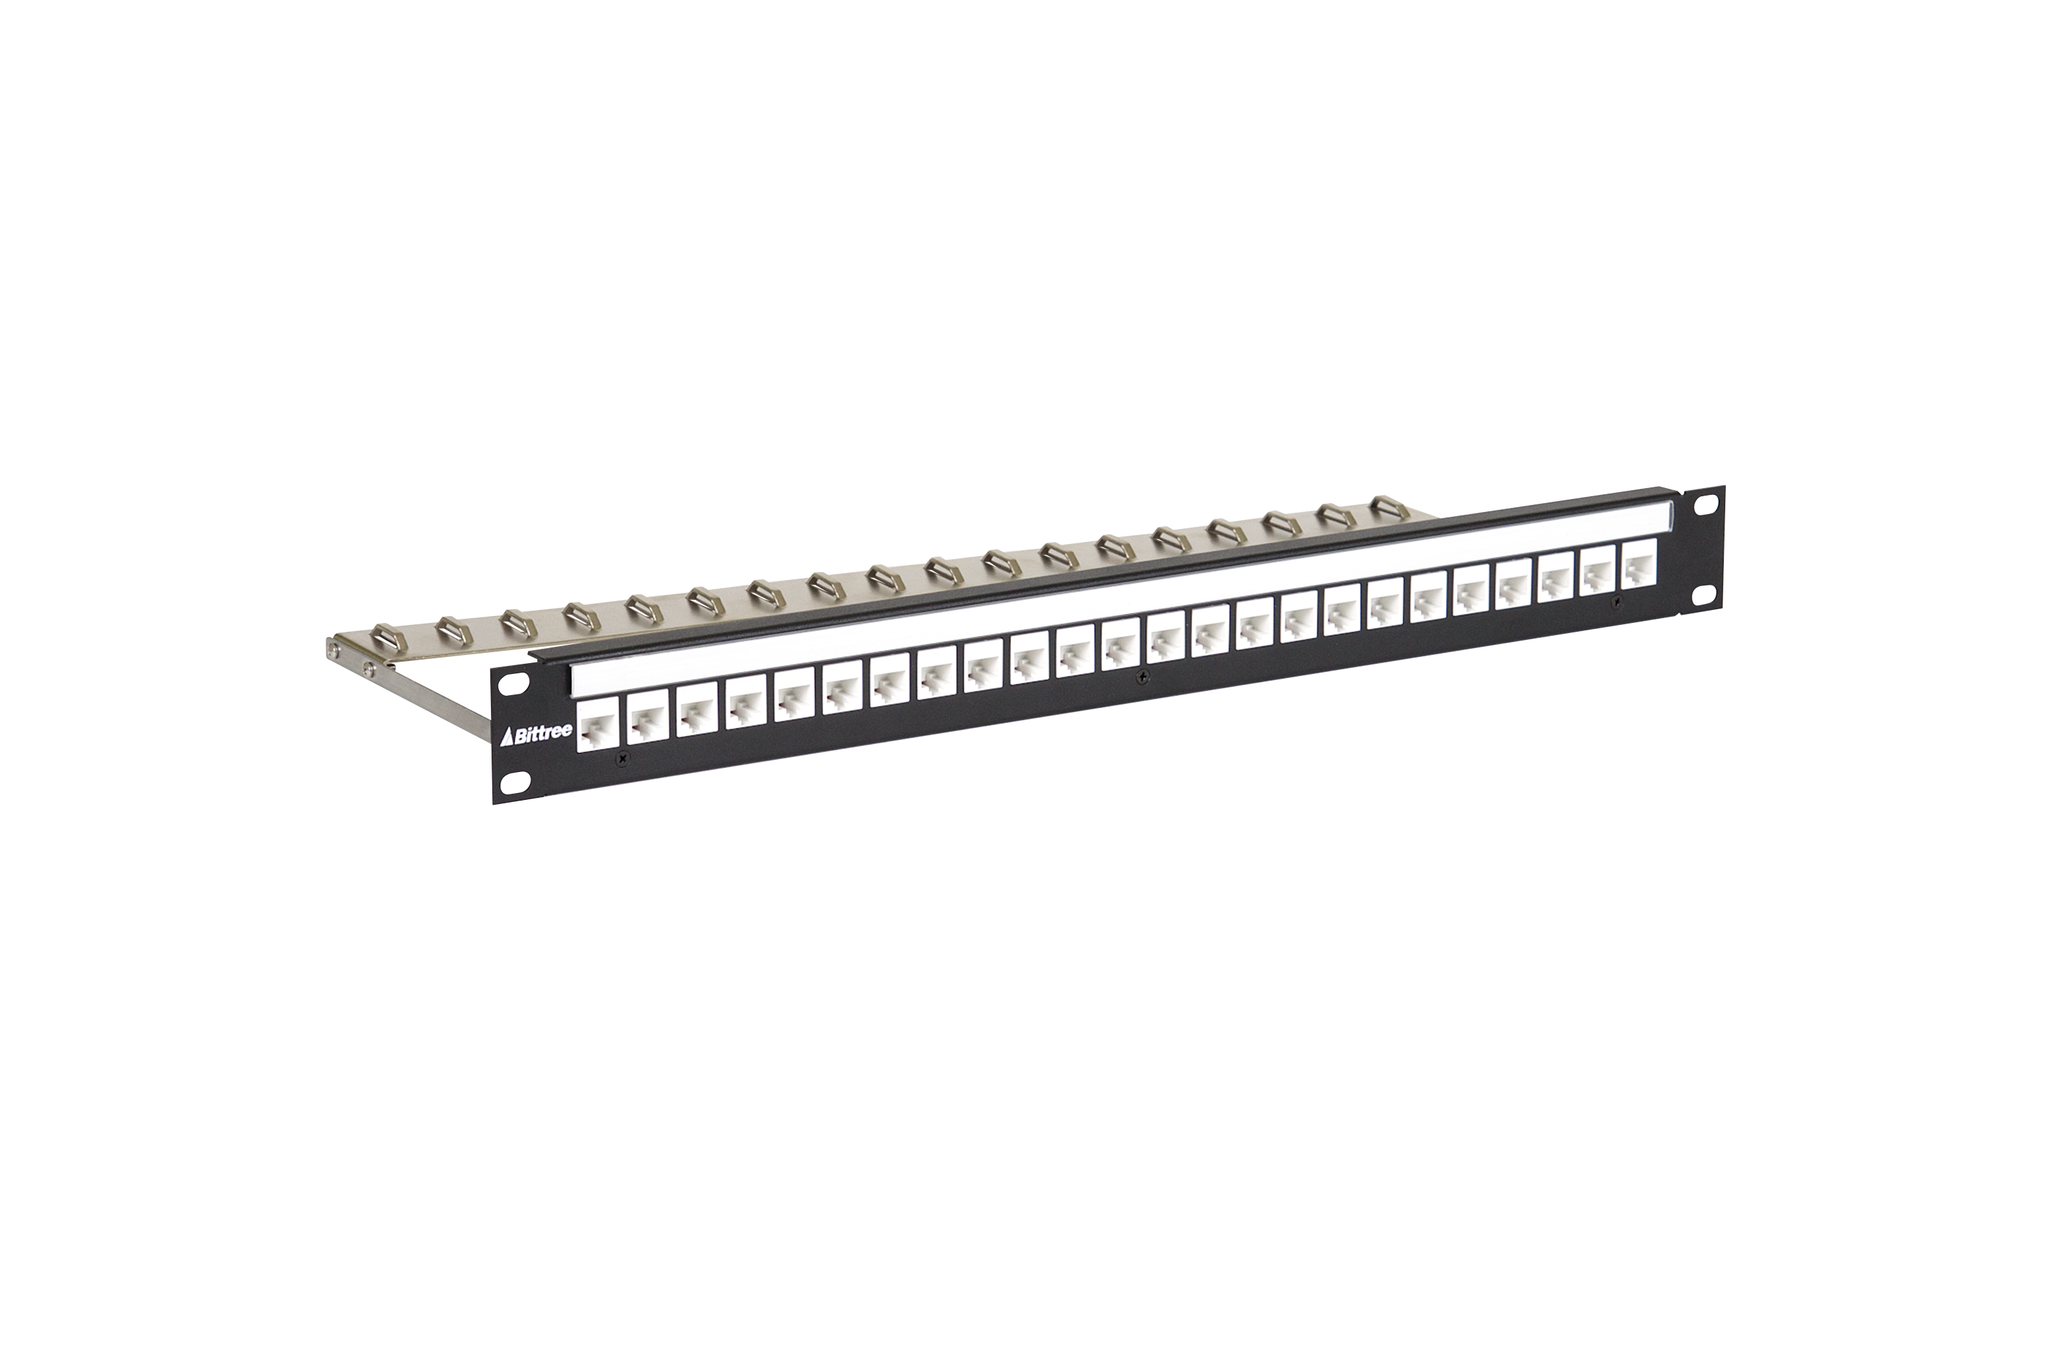 ... Flush-Mount Modular Keystone Panel, CAT 6, 110 Punchdown, Unshielded,  1x24 ...